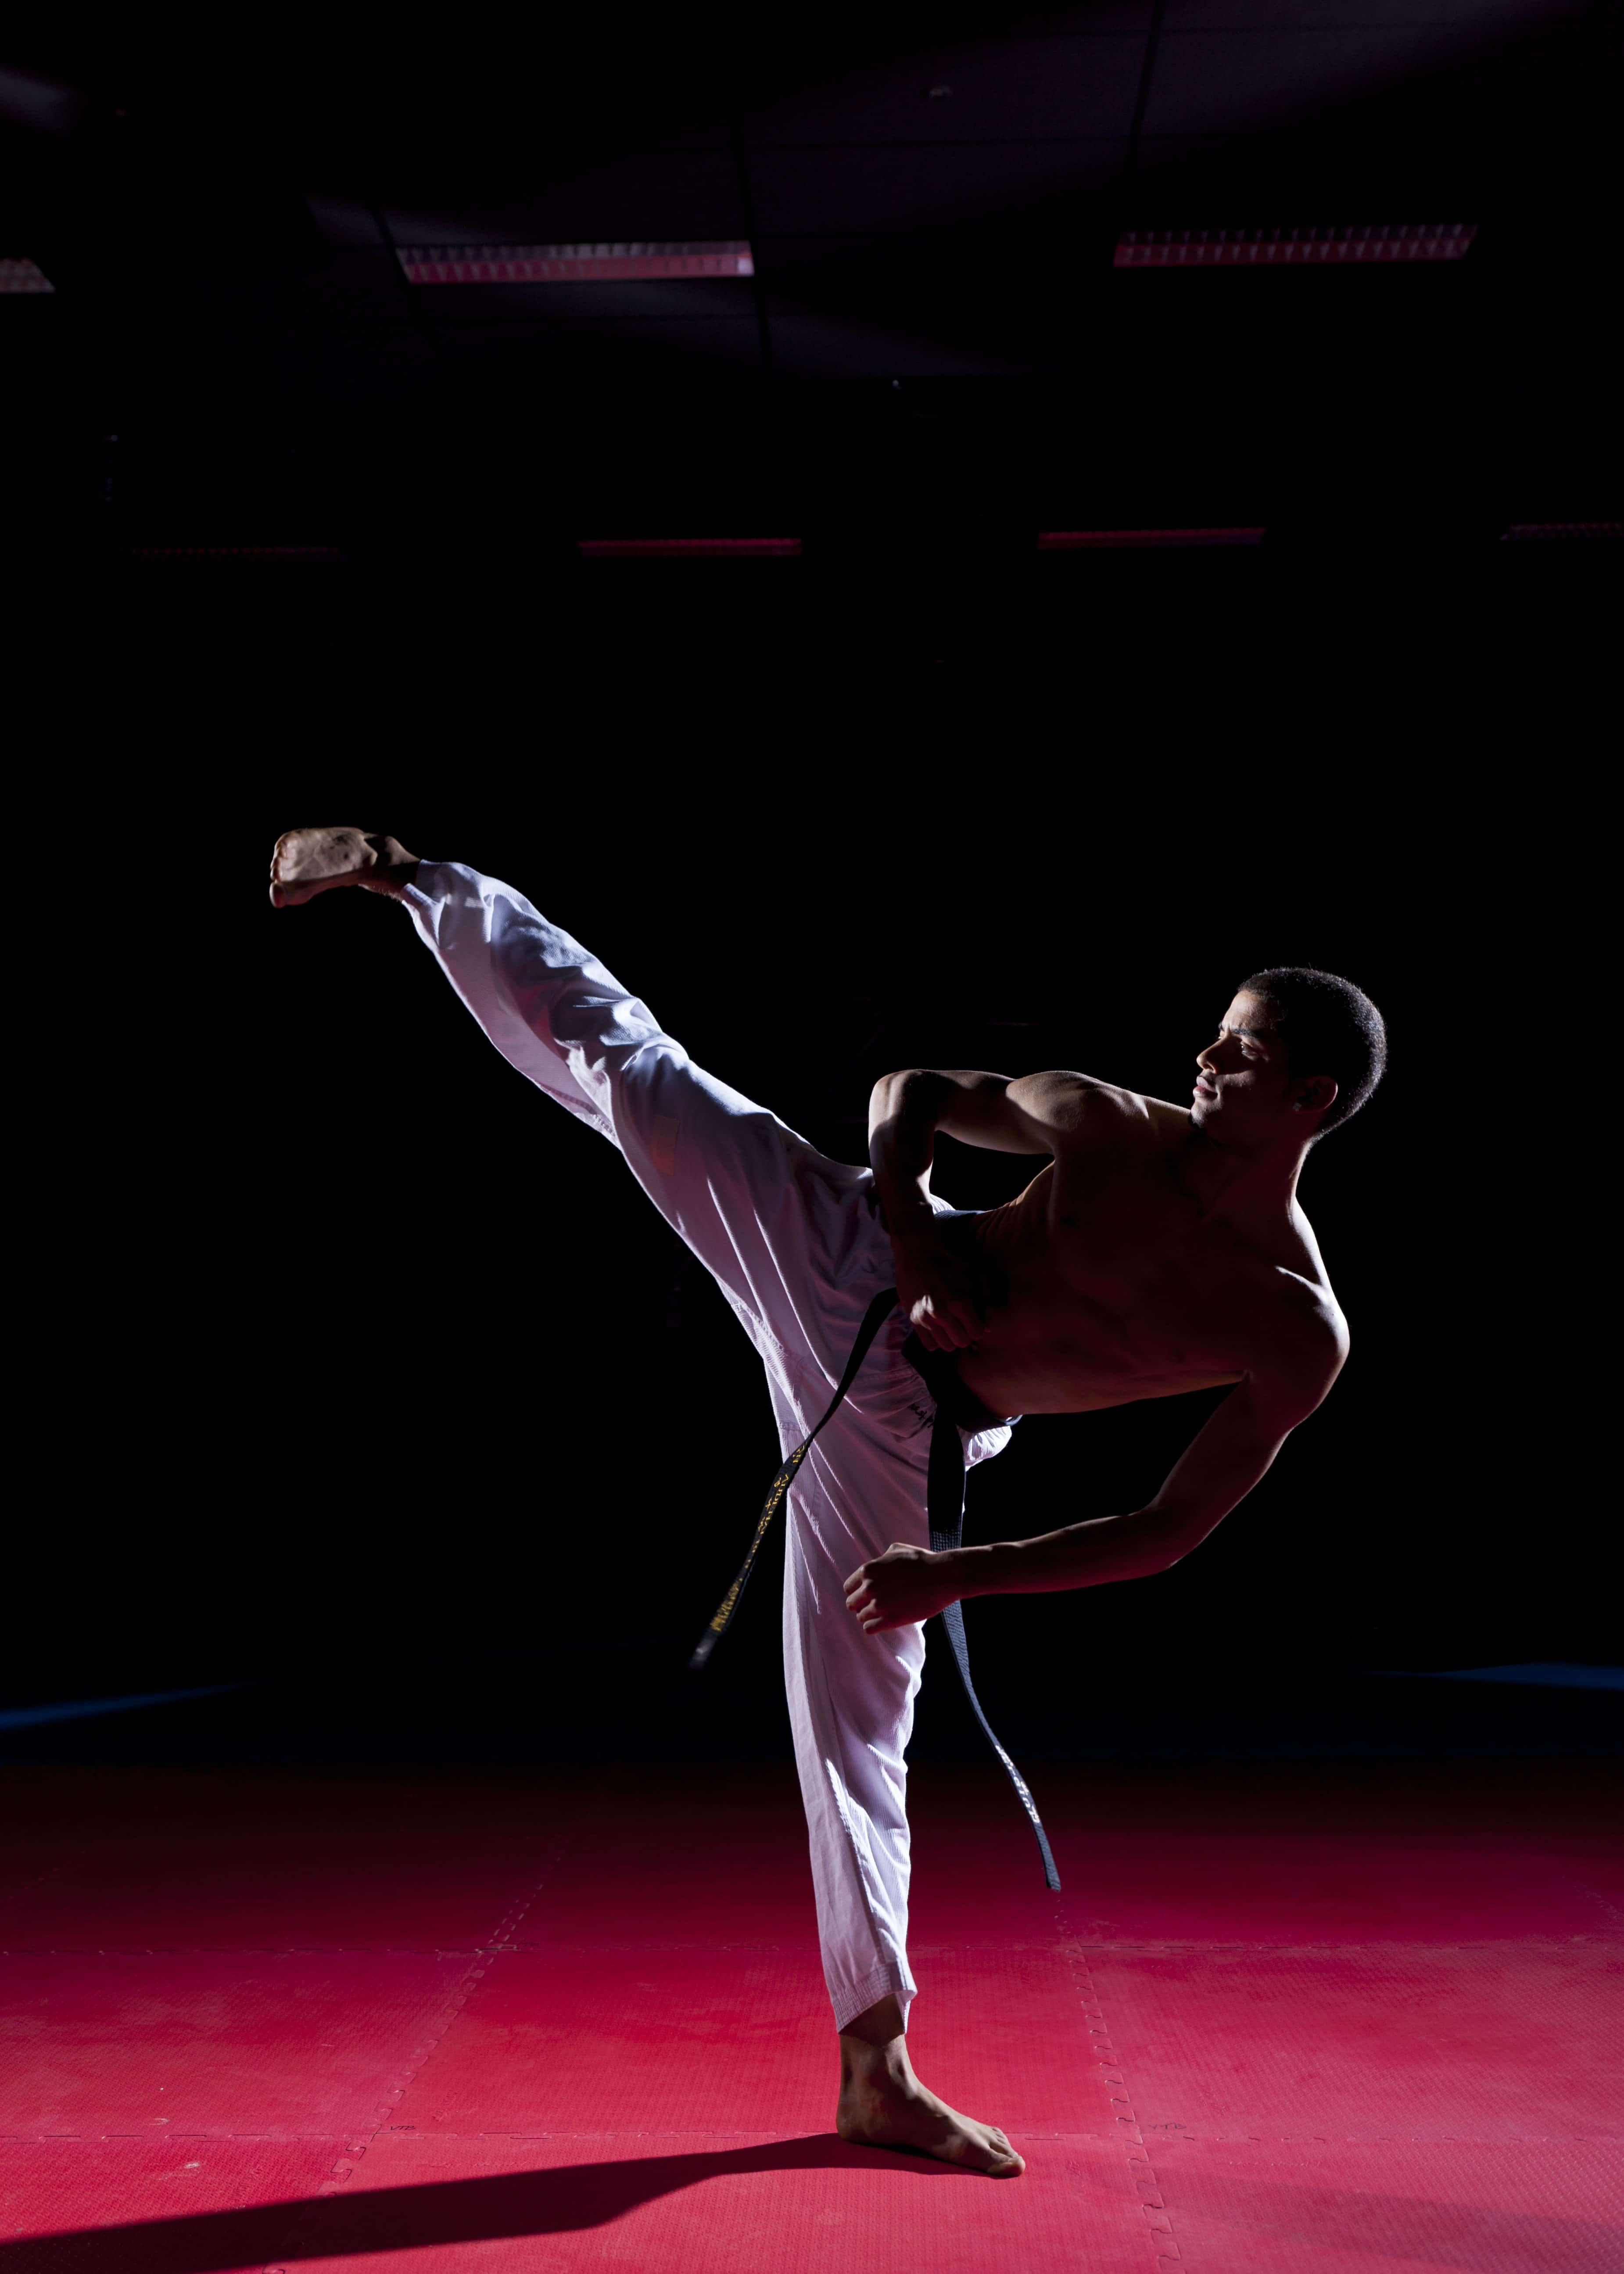 A martial arts teacher demonstrates how the side kick is done.